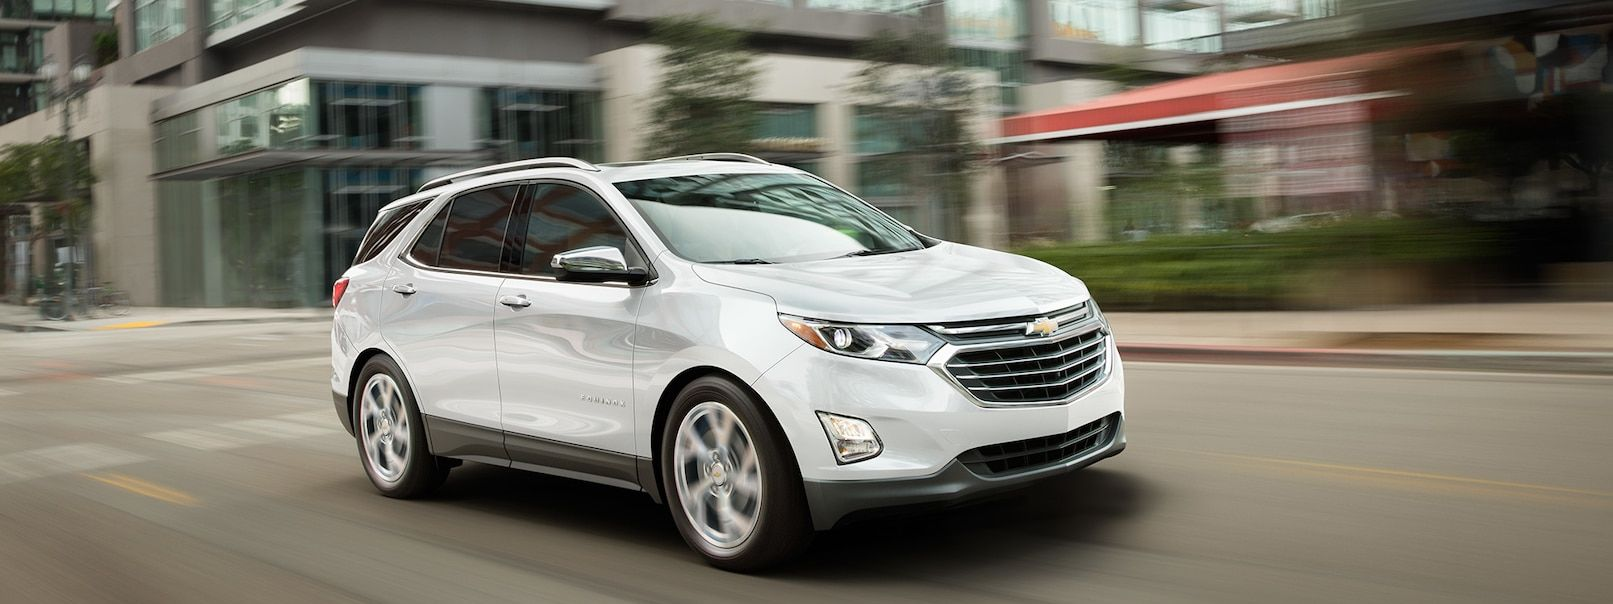 2019 Chevrolet Equinox for Sale near Lapeer, MI